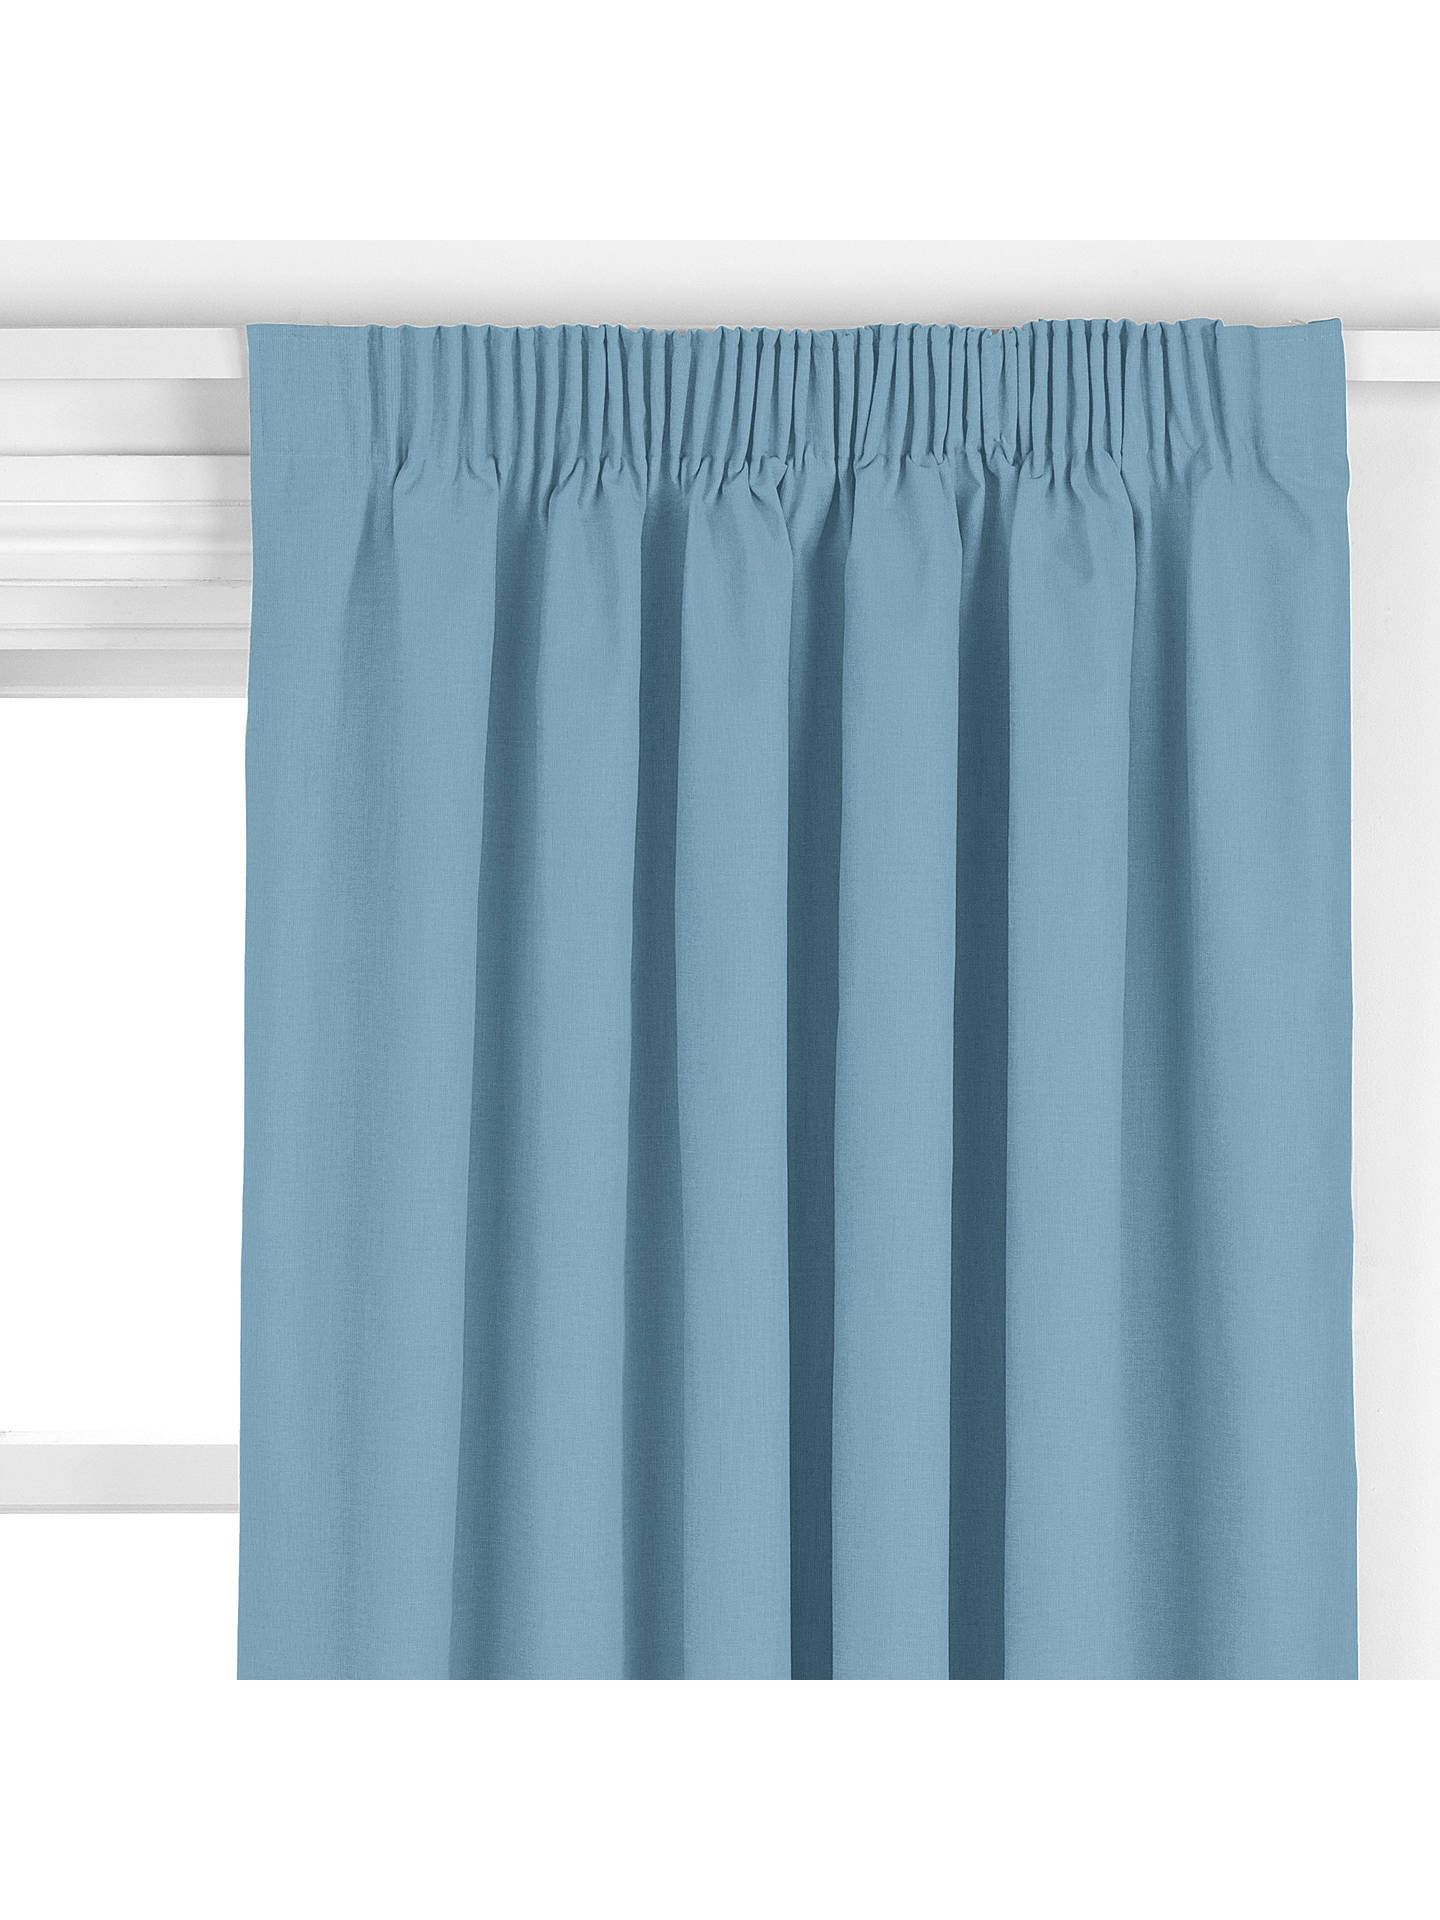 b3db67b0ff3 Buy John Lewis   Partners Luna Made to Measure Curtains